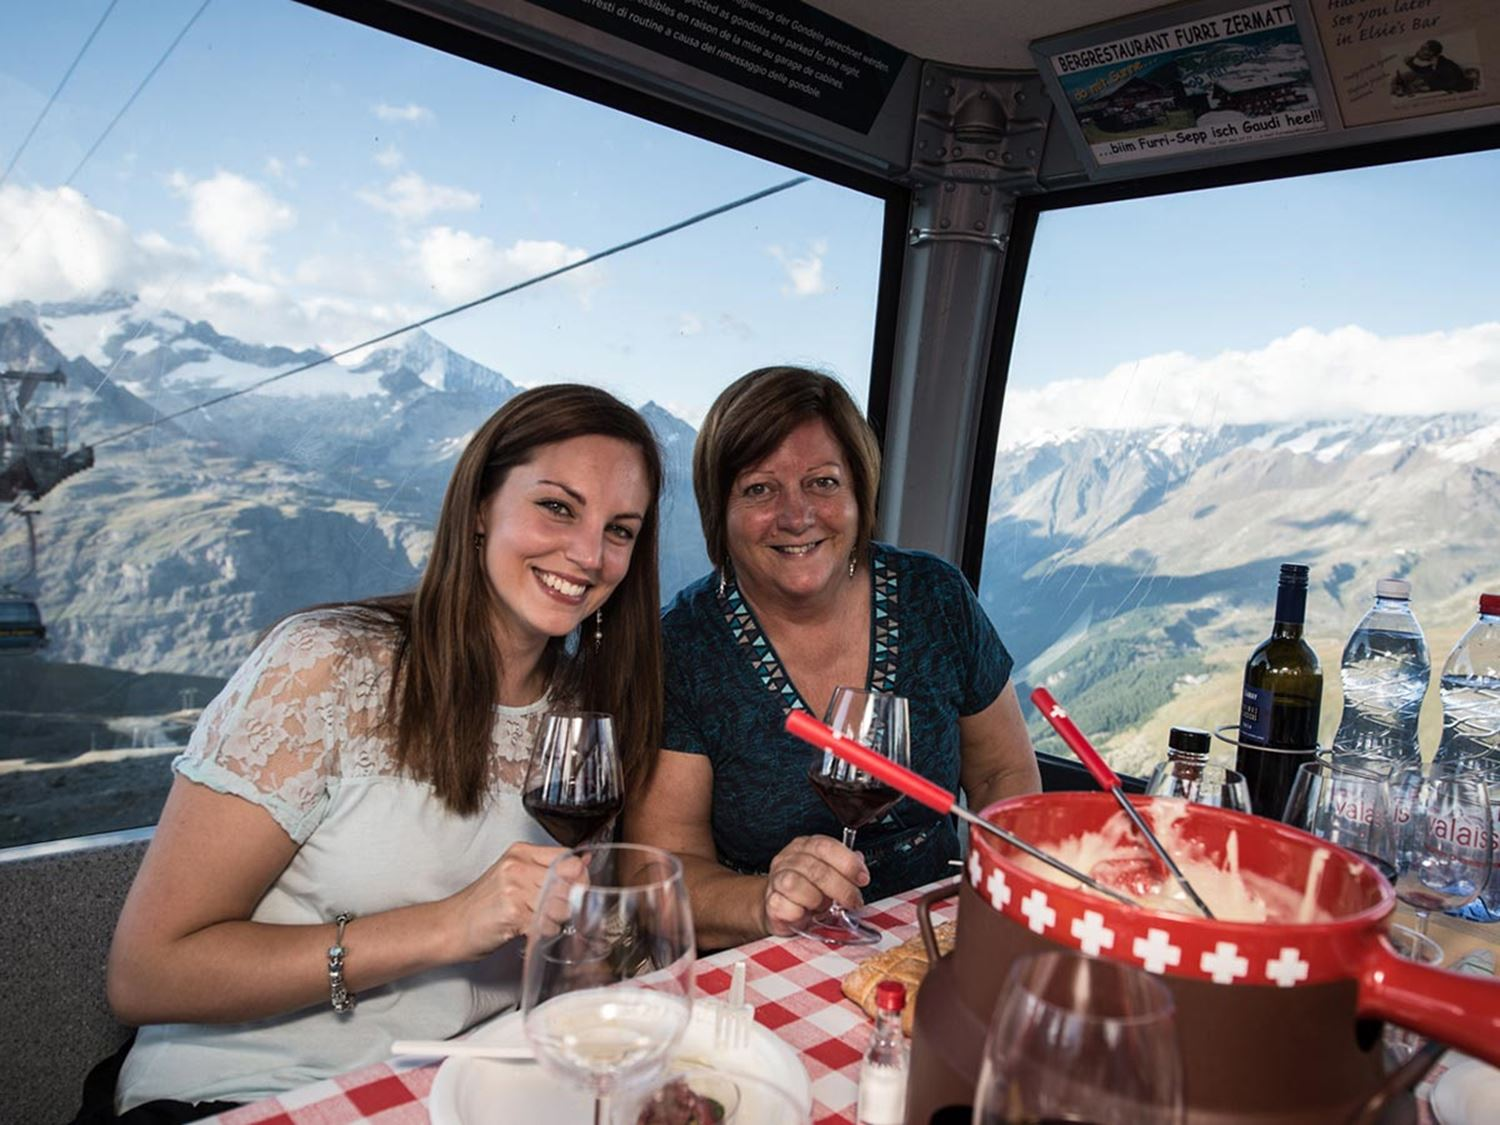 Taste-of-Zermatt_Events_Fondue_03.jpg